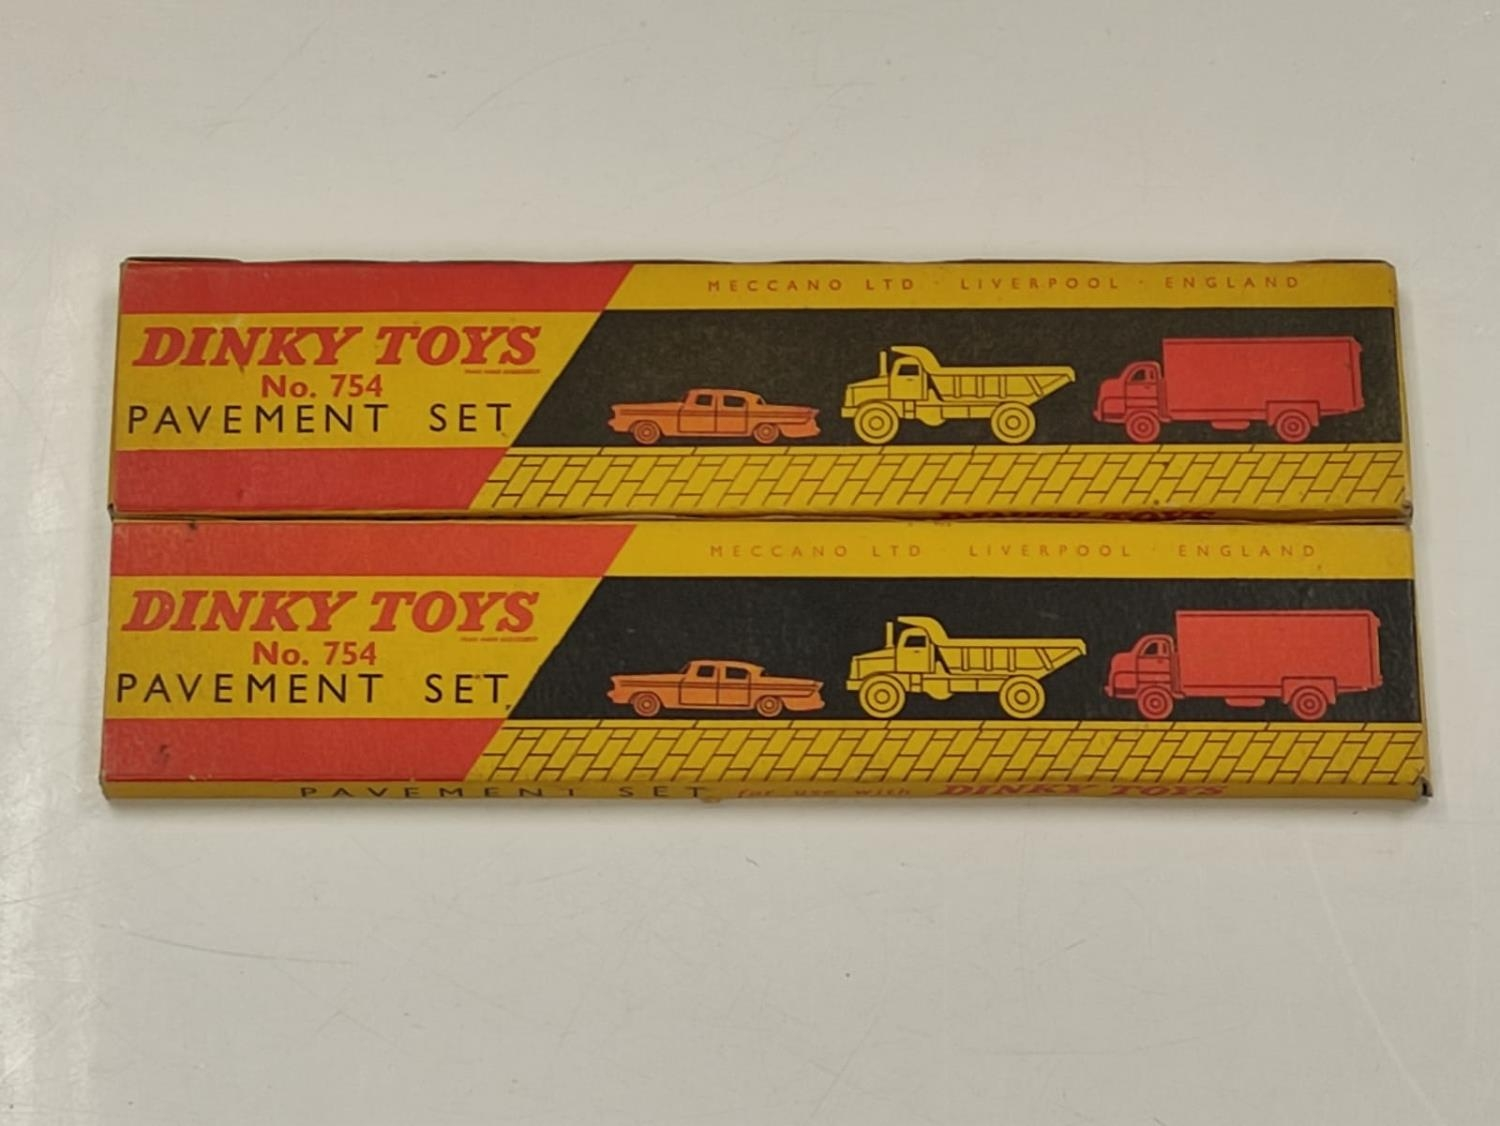 Two Dinky toys boxed pavement sets. - Image 2 of 3